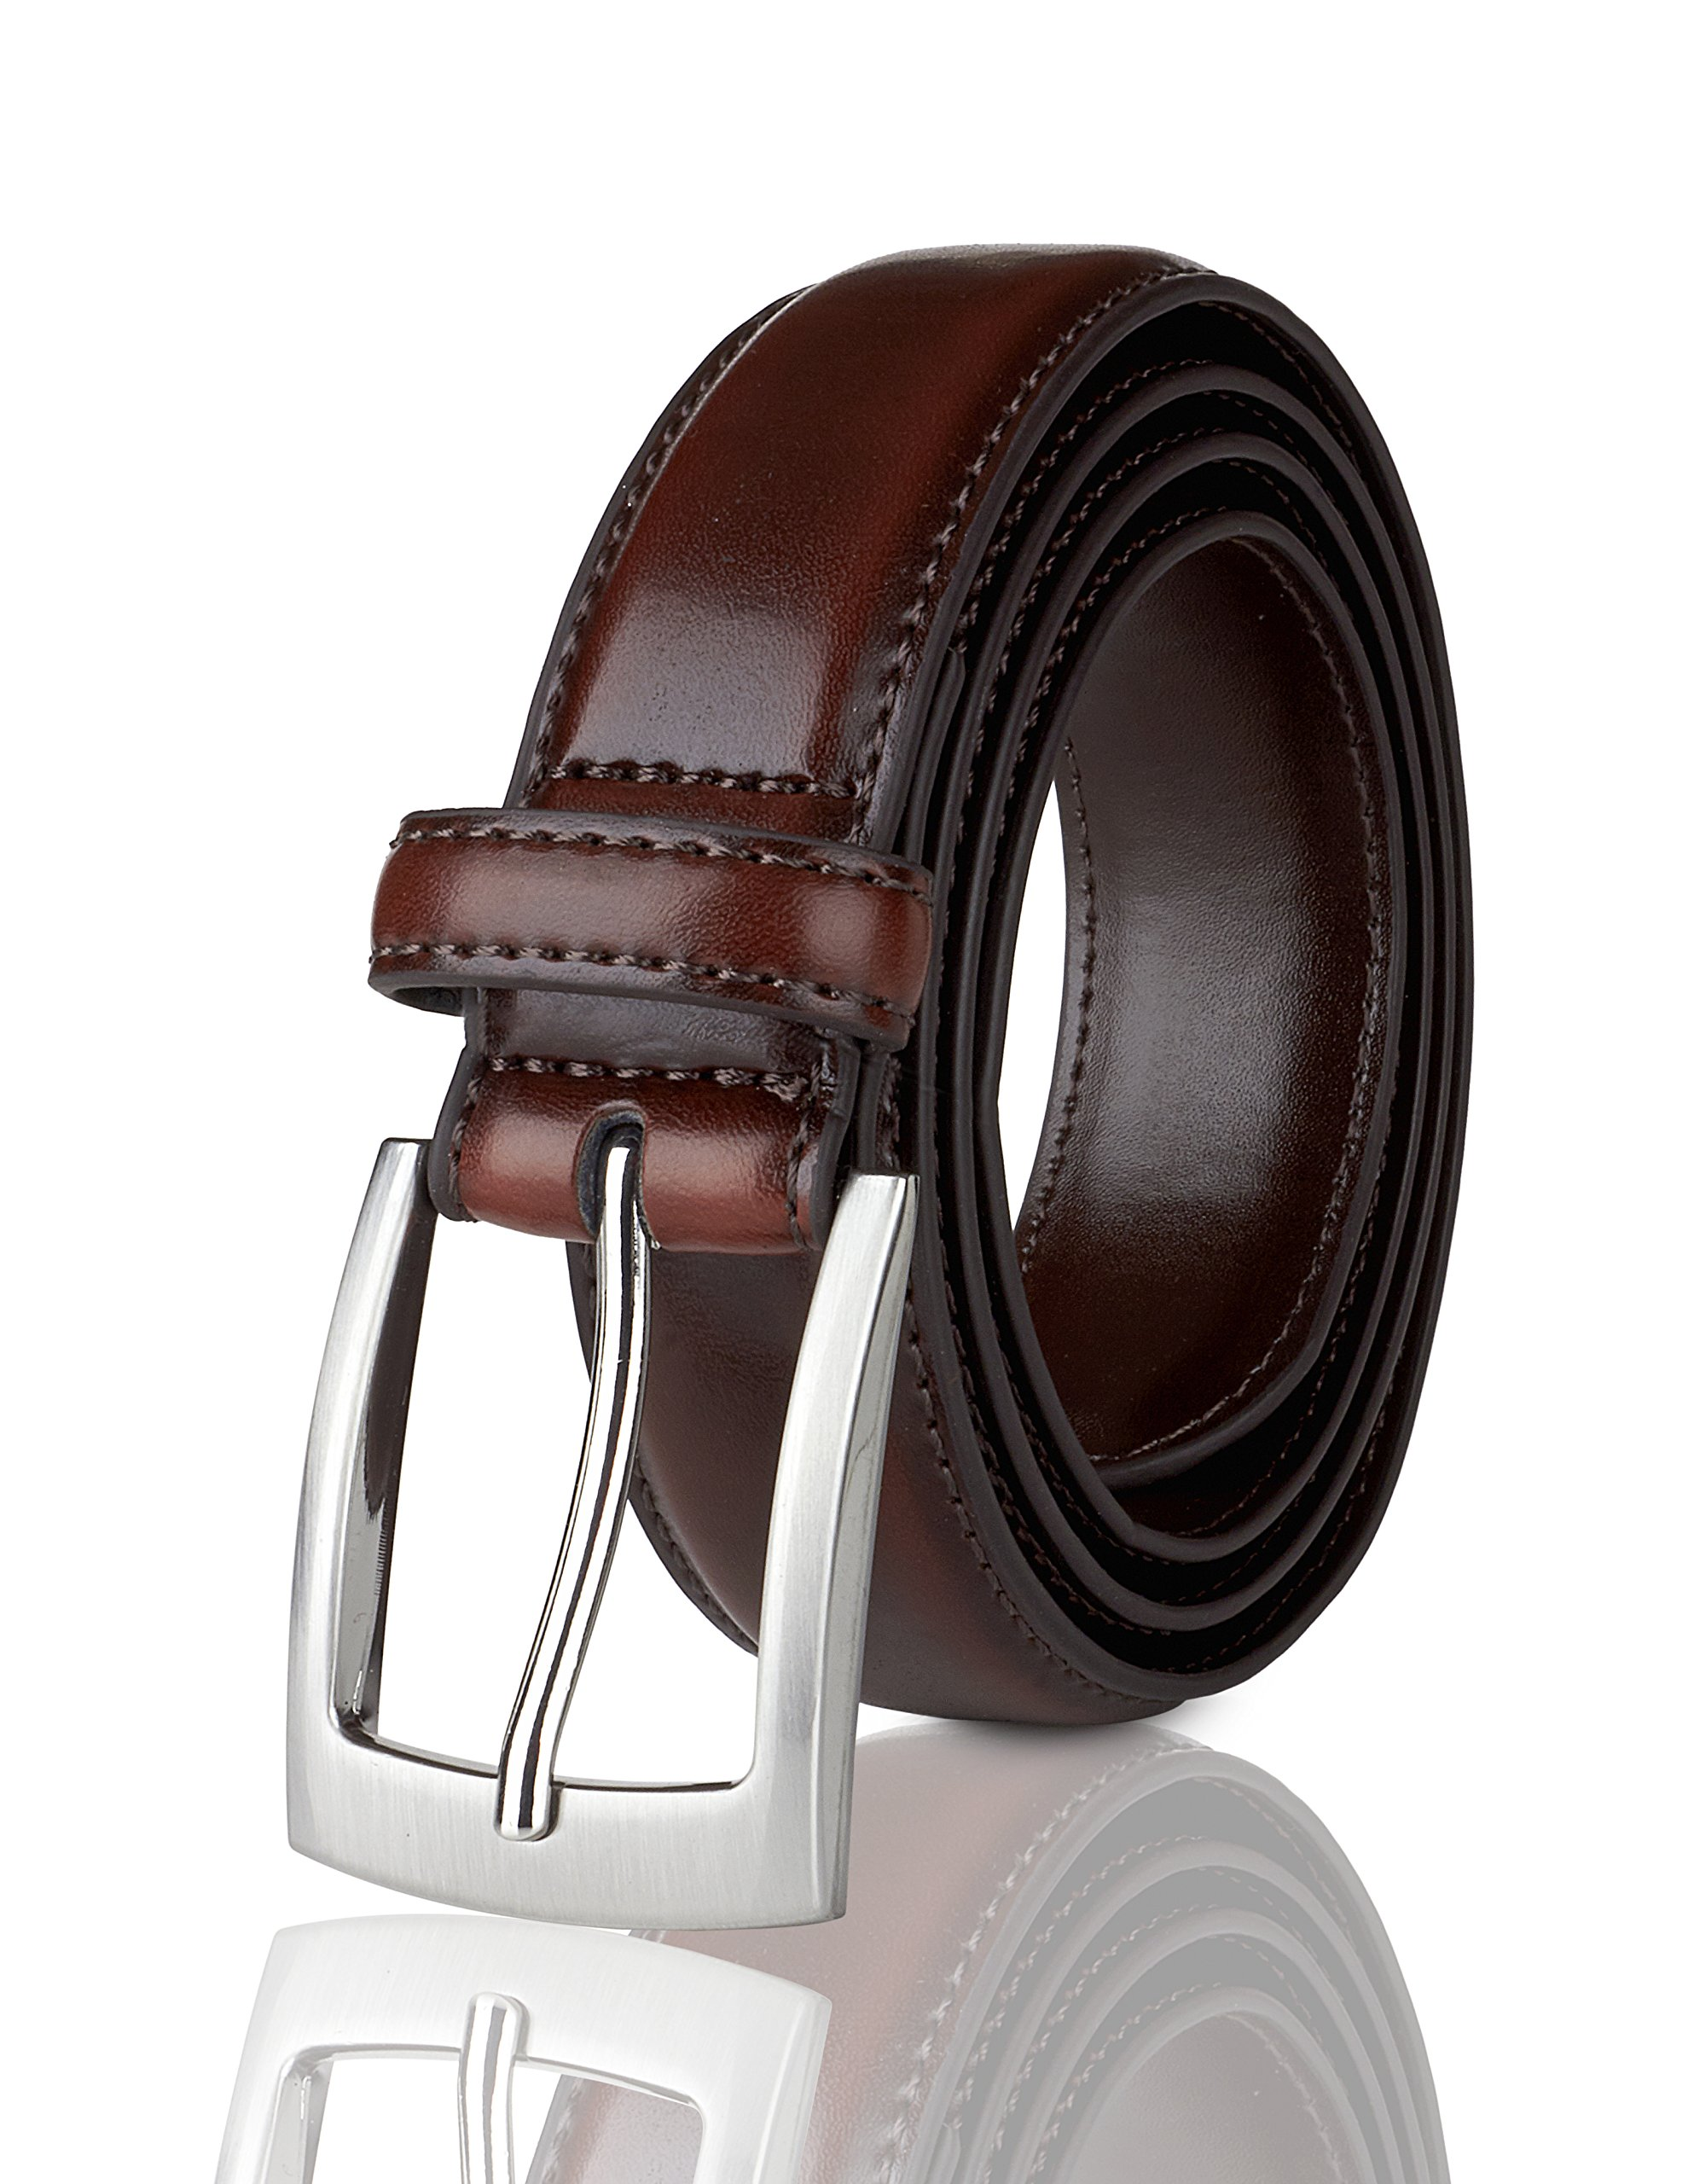 Belts for Men Mens Belt Buckle Genuine Leather Stitched Uniform Dress Belt - Wine - Size 34 (Waist 32)